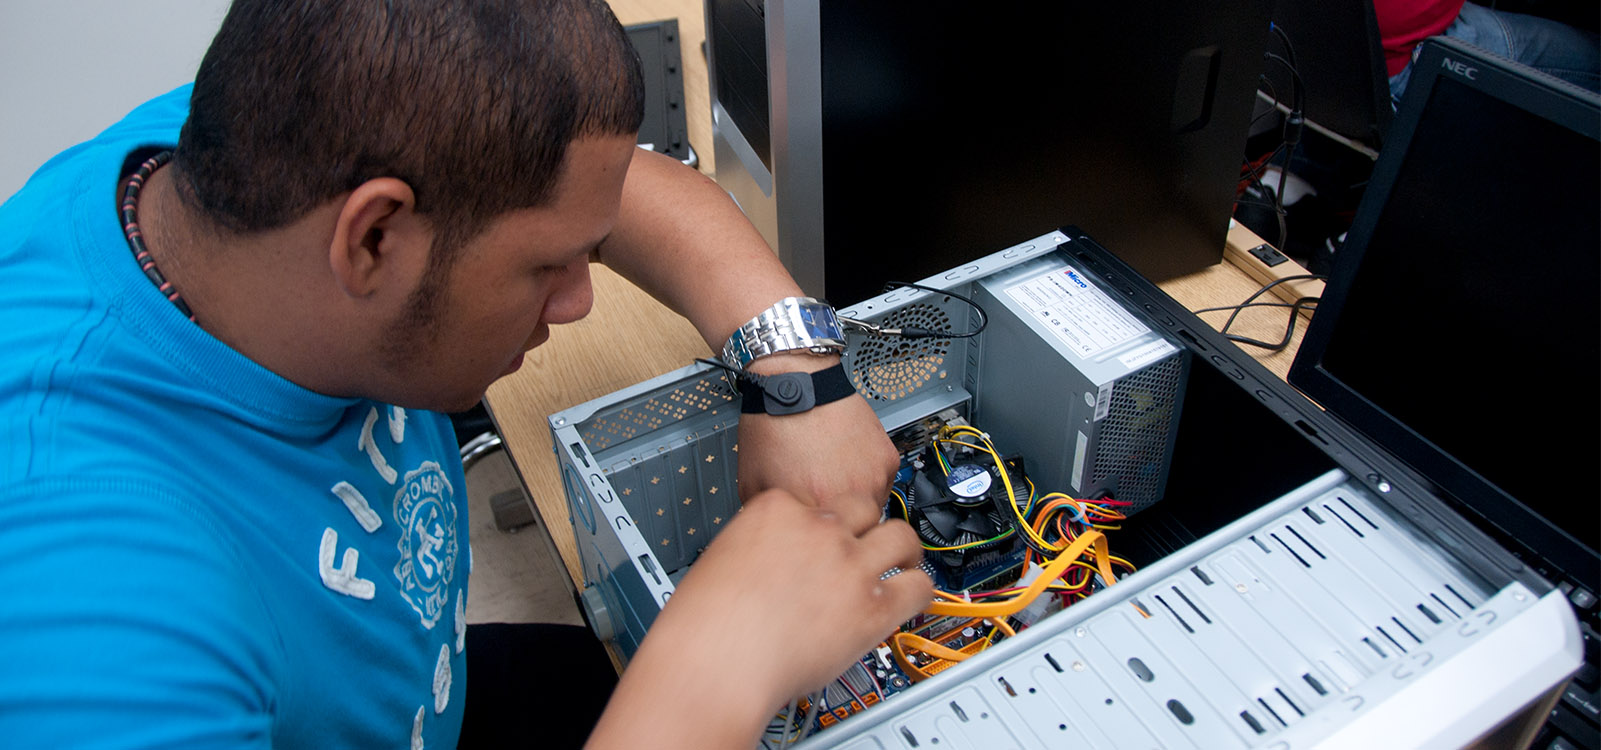 IT / Network Support Degree